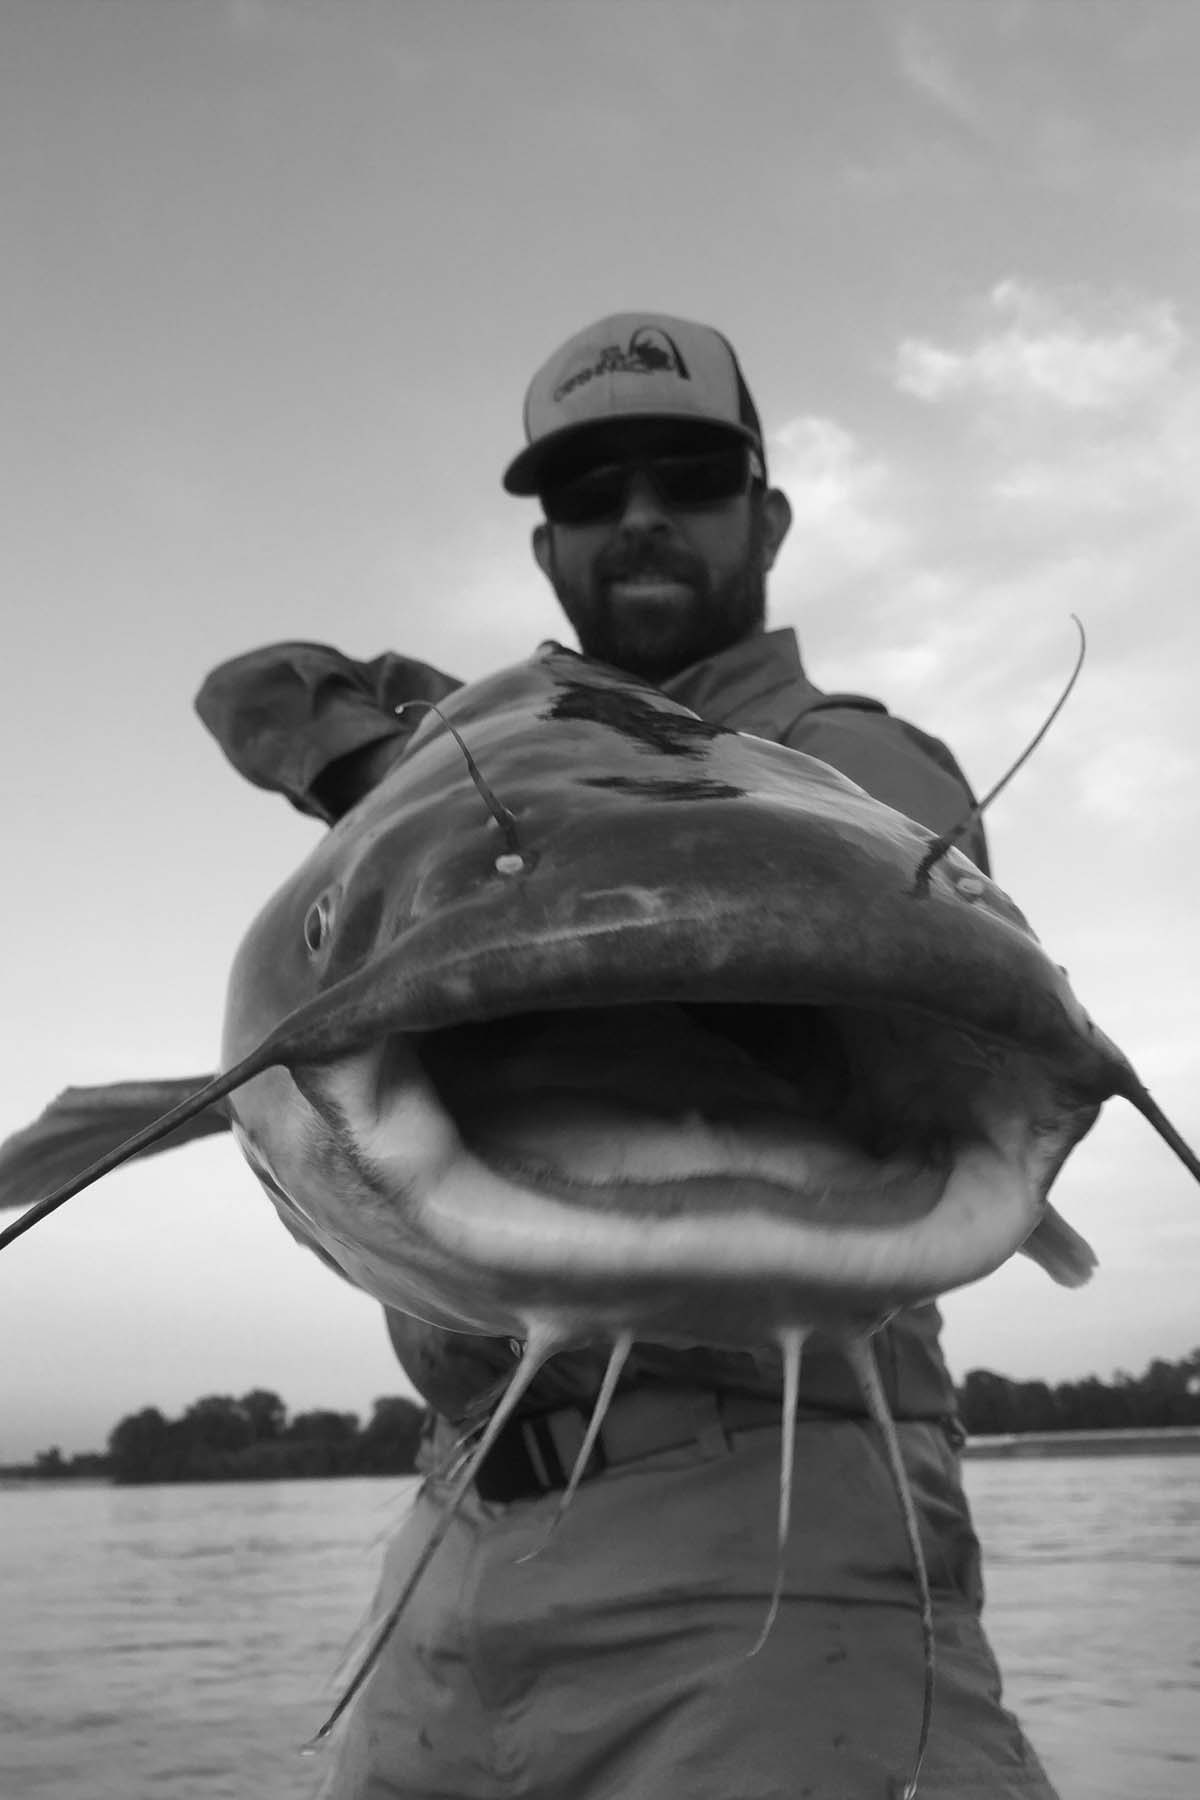 Catfish Guide - St. Louis Catfish Guide Service - Whisker Seeker Tackle